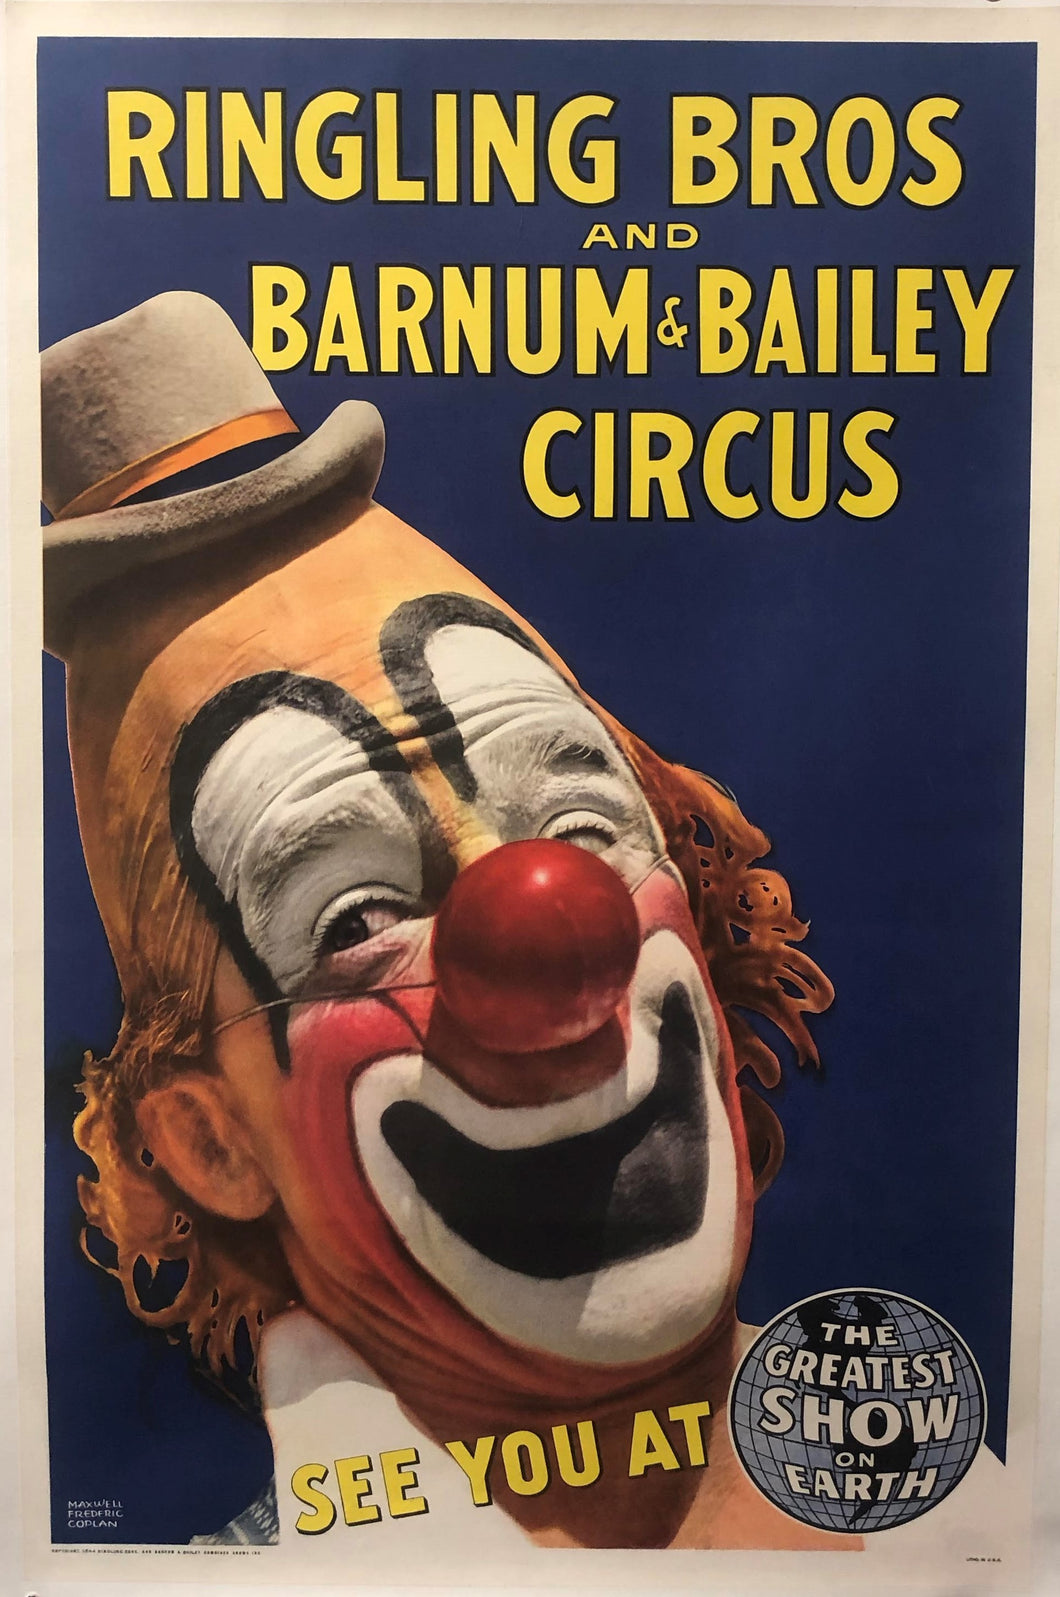 Ringling Bros And Barnum & Bailey Circus (clown)